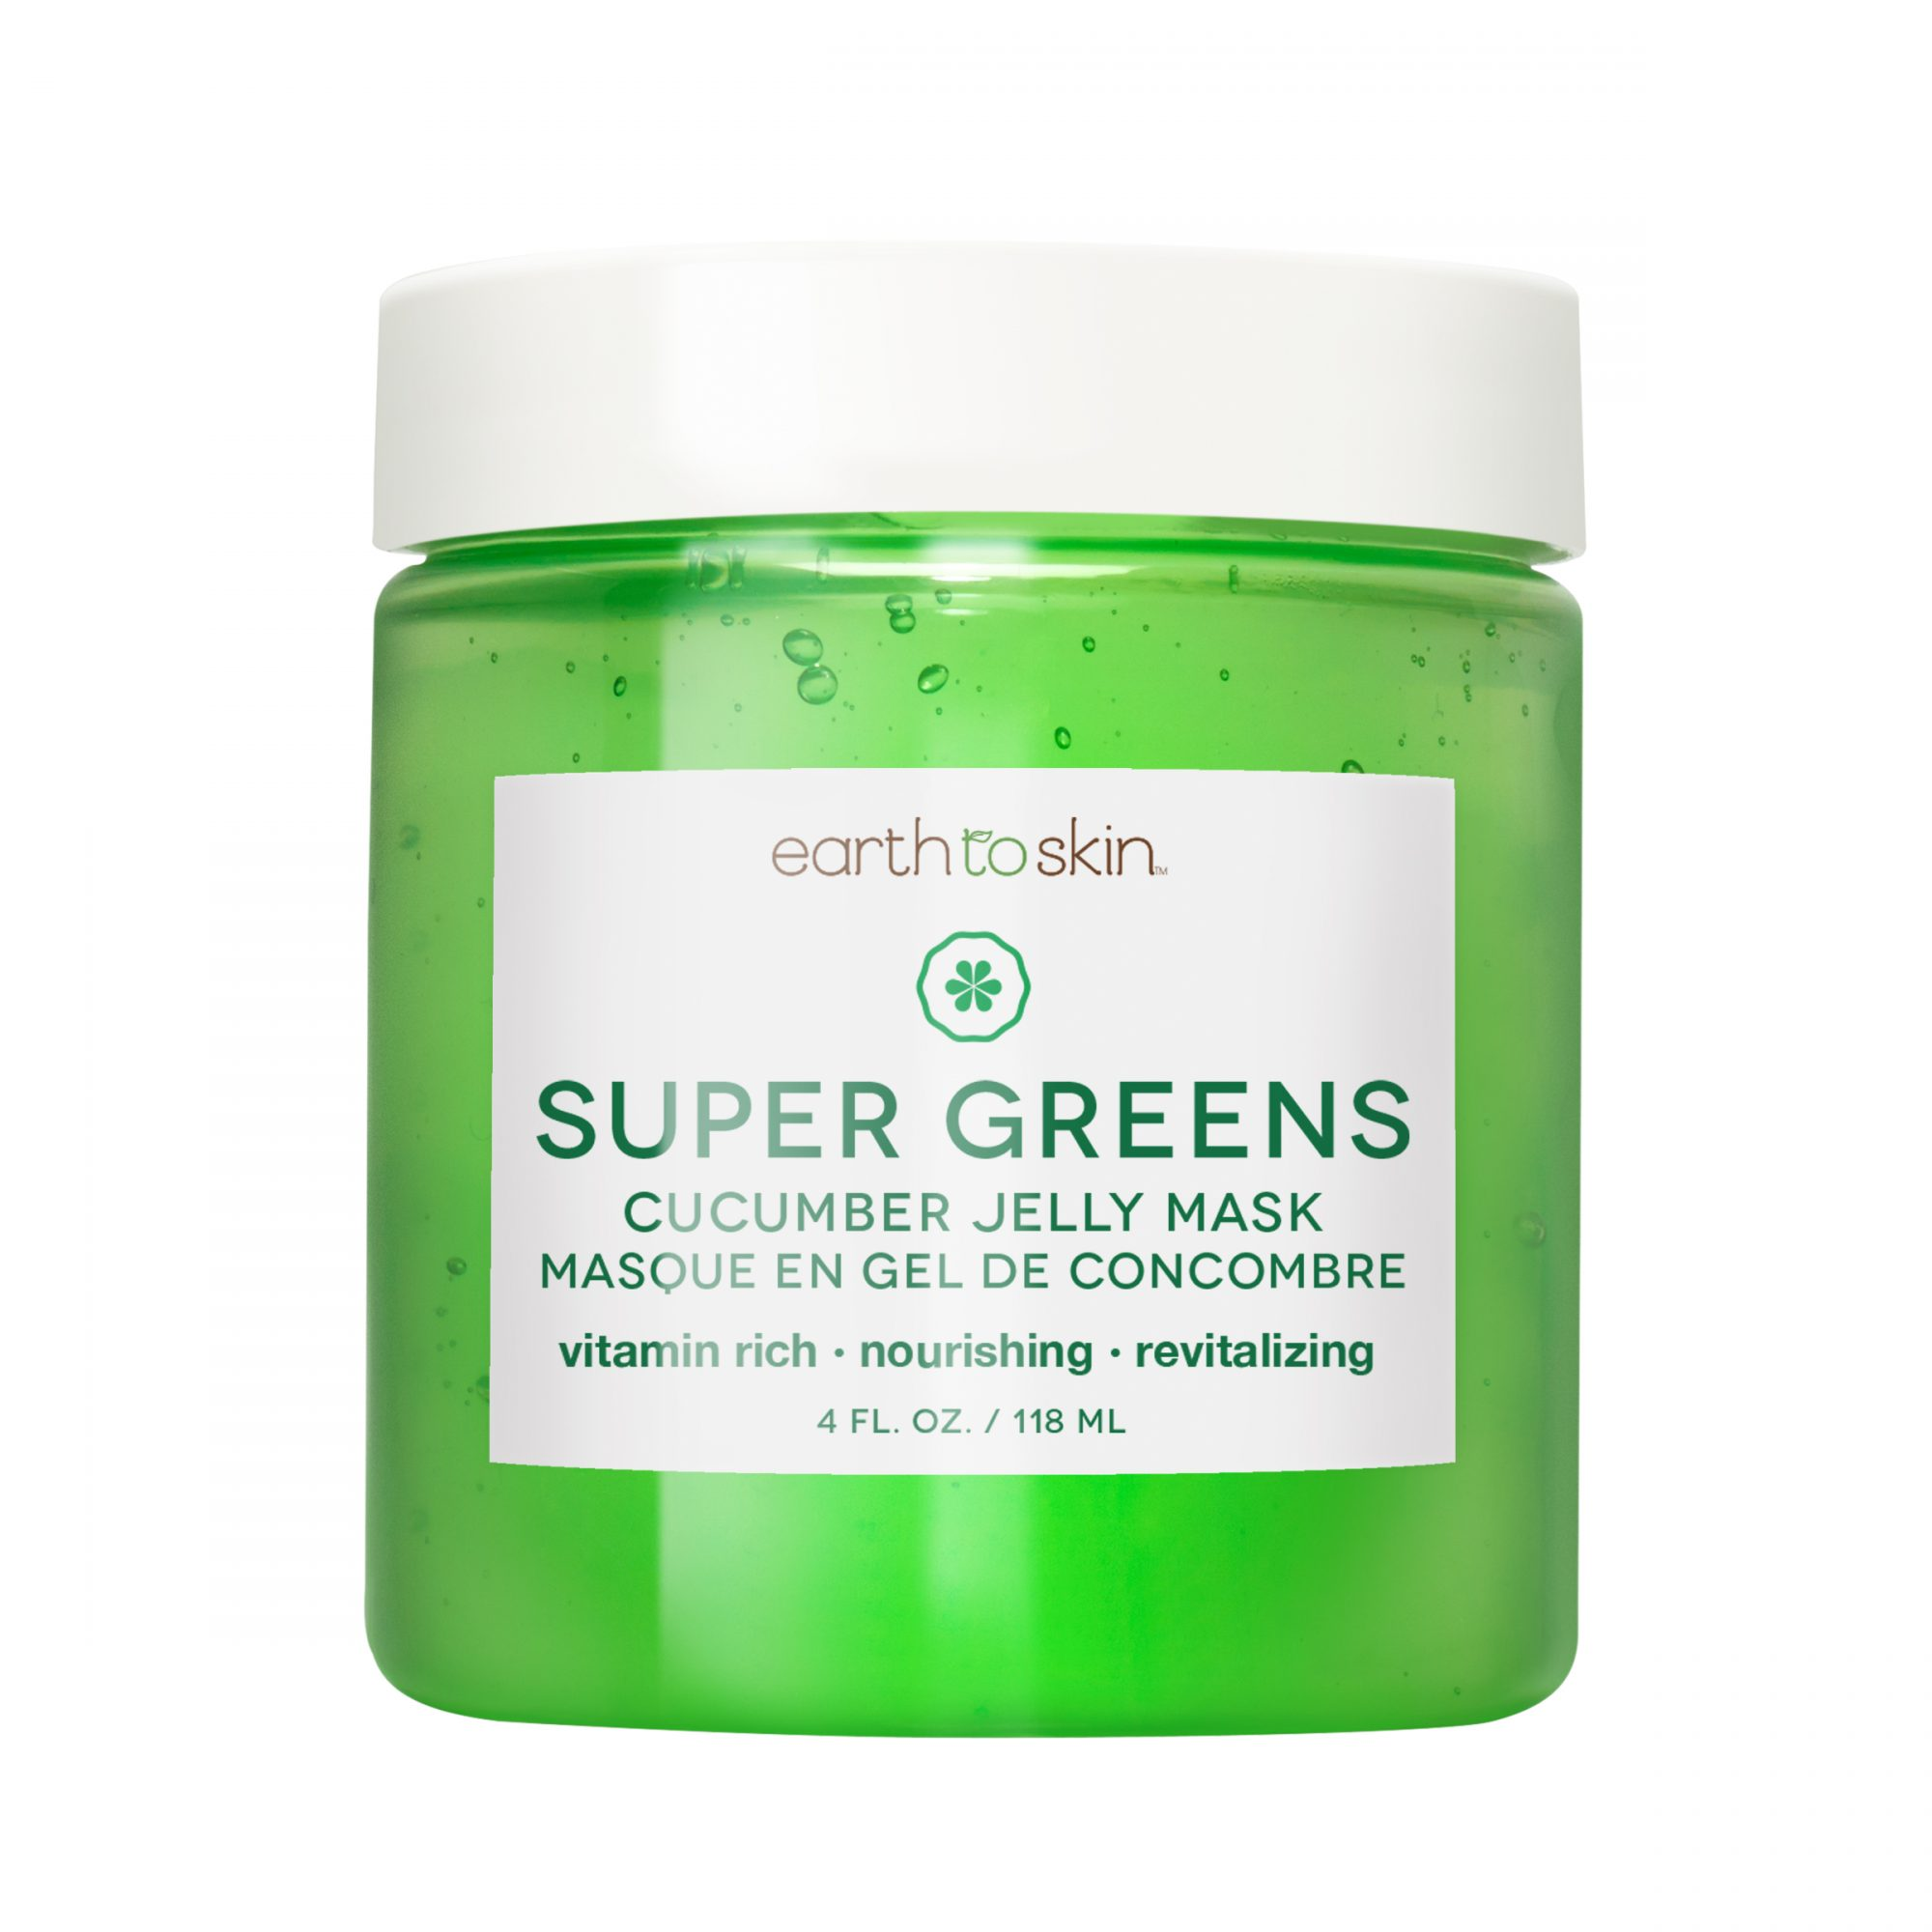 Earth to Skin Super Greens Cucumber Jelly Mask at Walmart